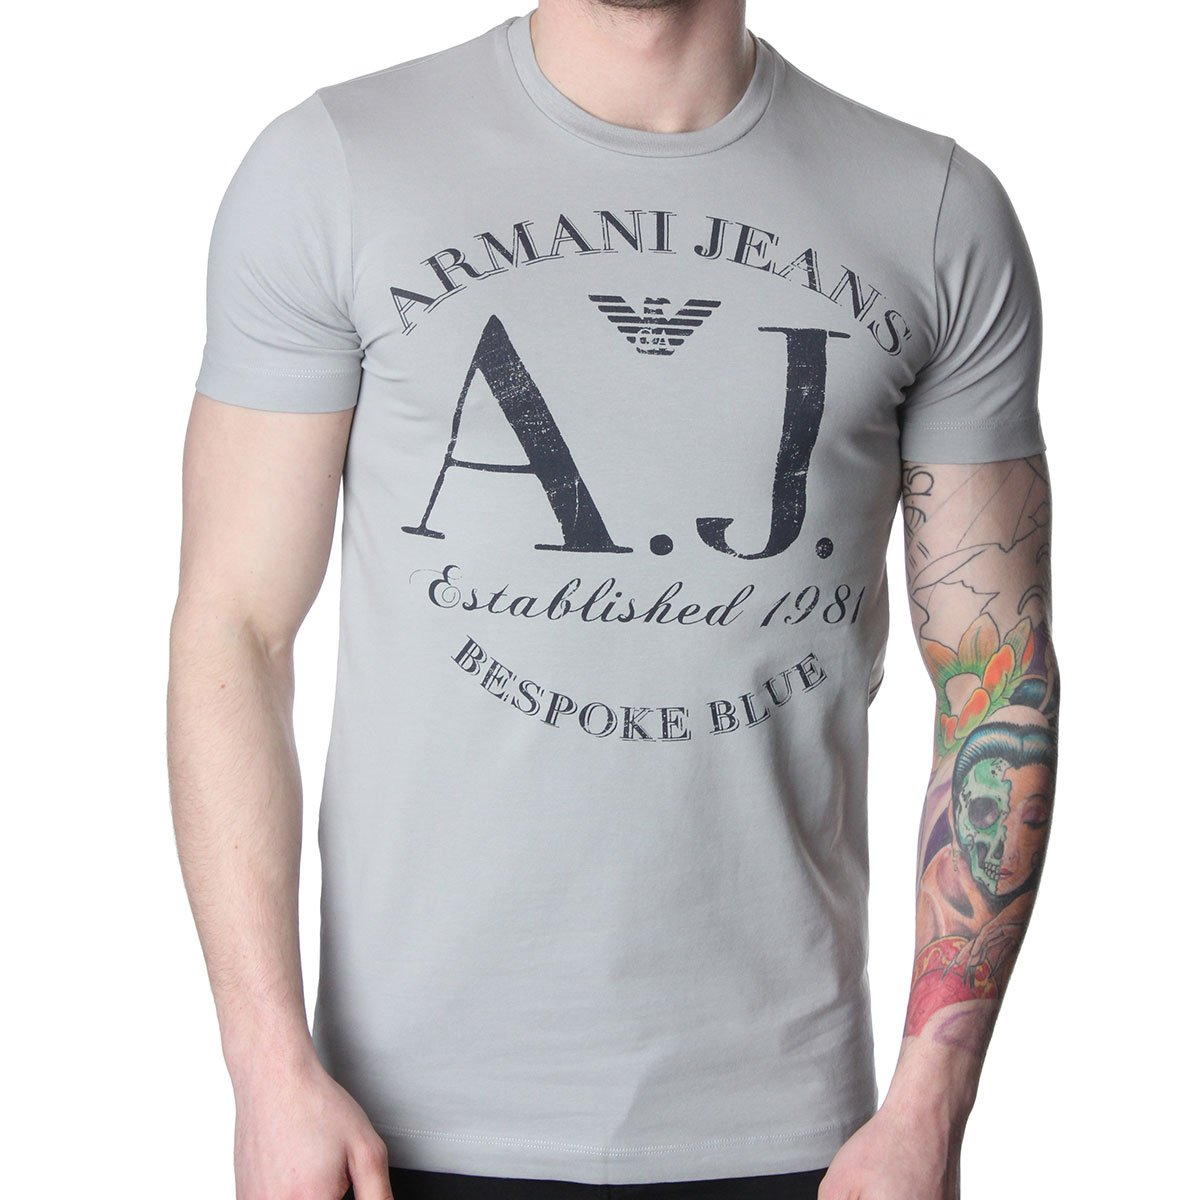 armani jeans t6h34 t shirt armani jeans from the. Black Bedroom Furniture Sets. Home Design Ideas